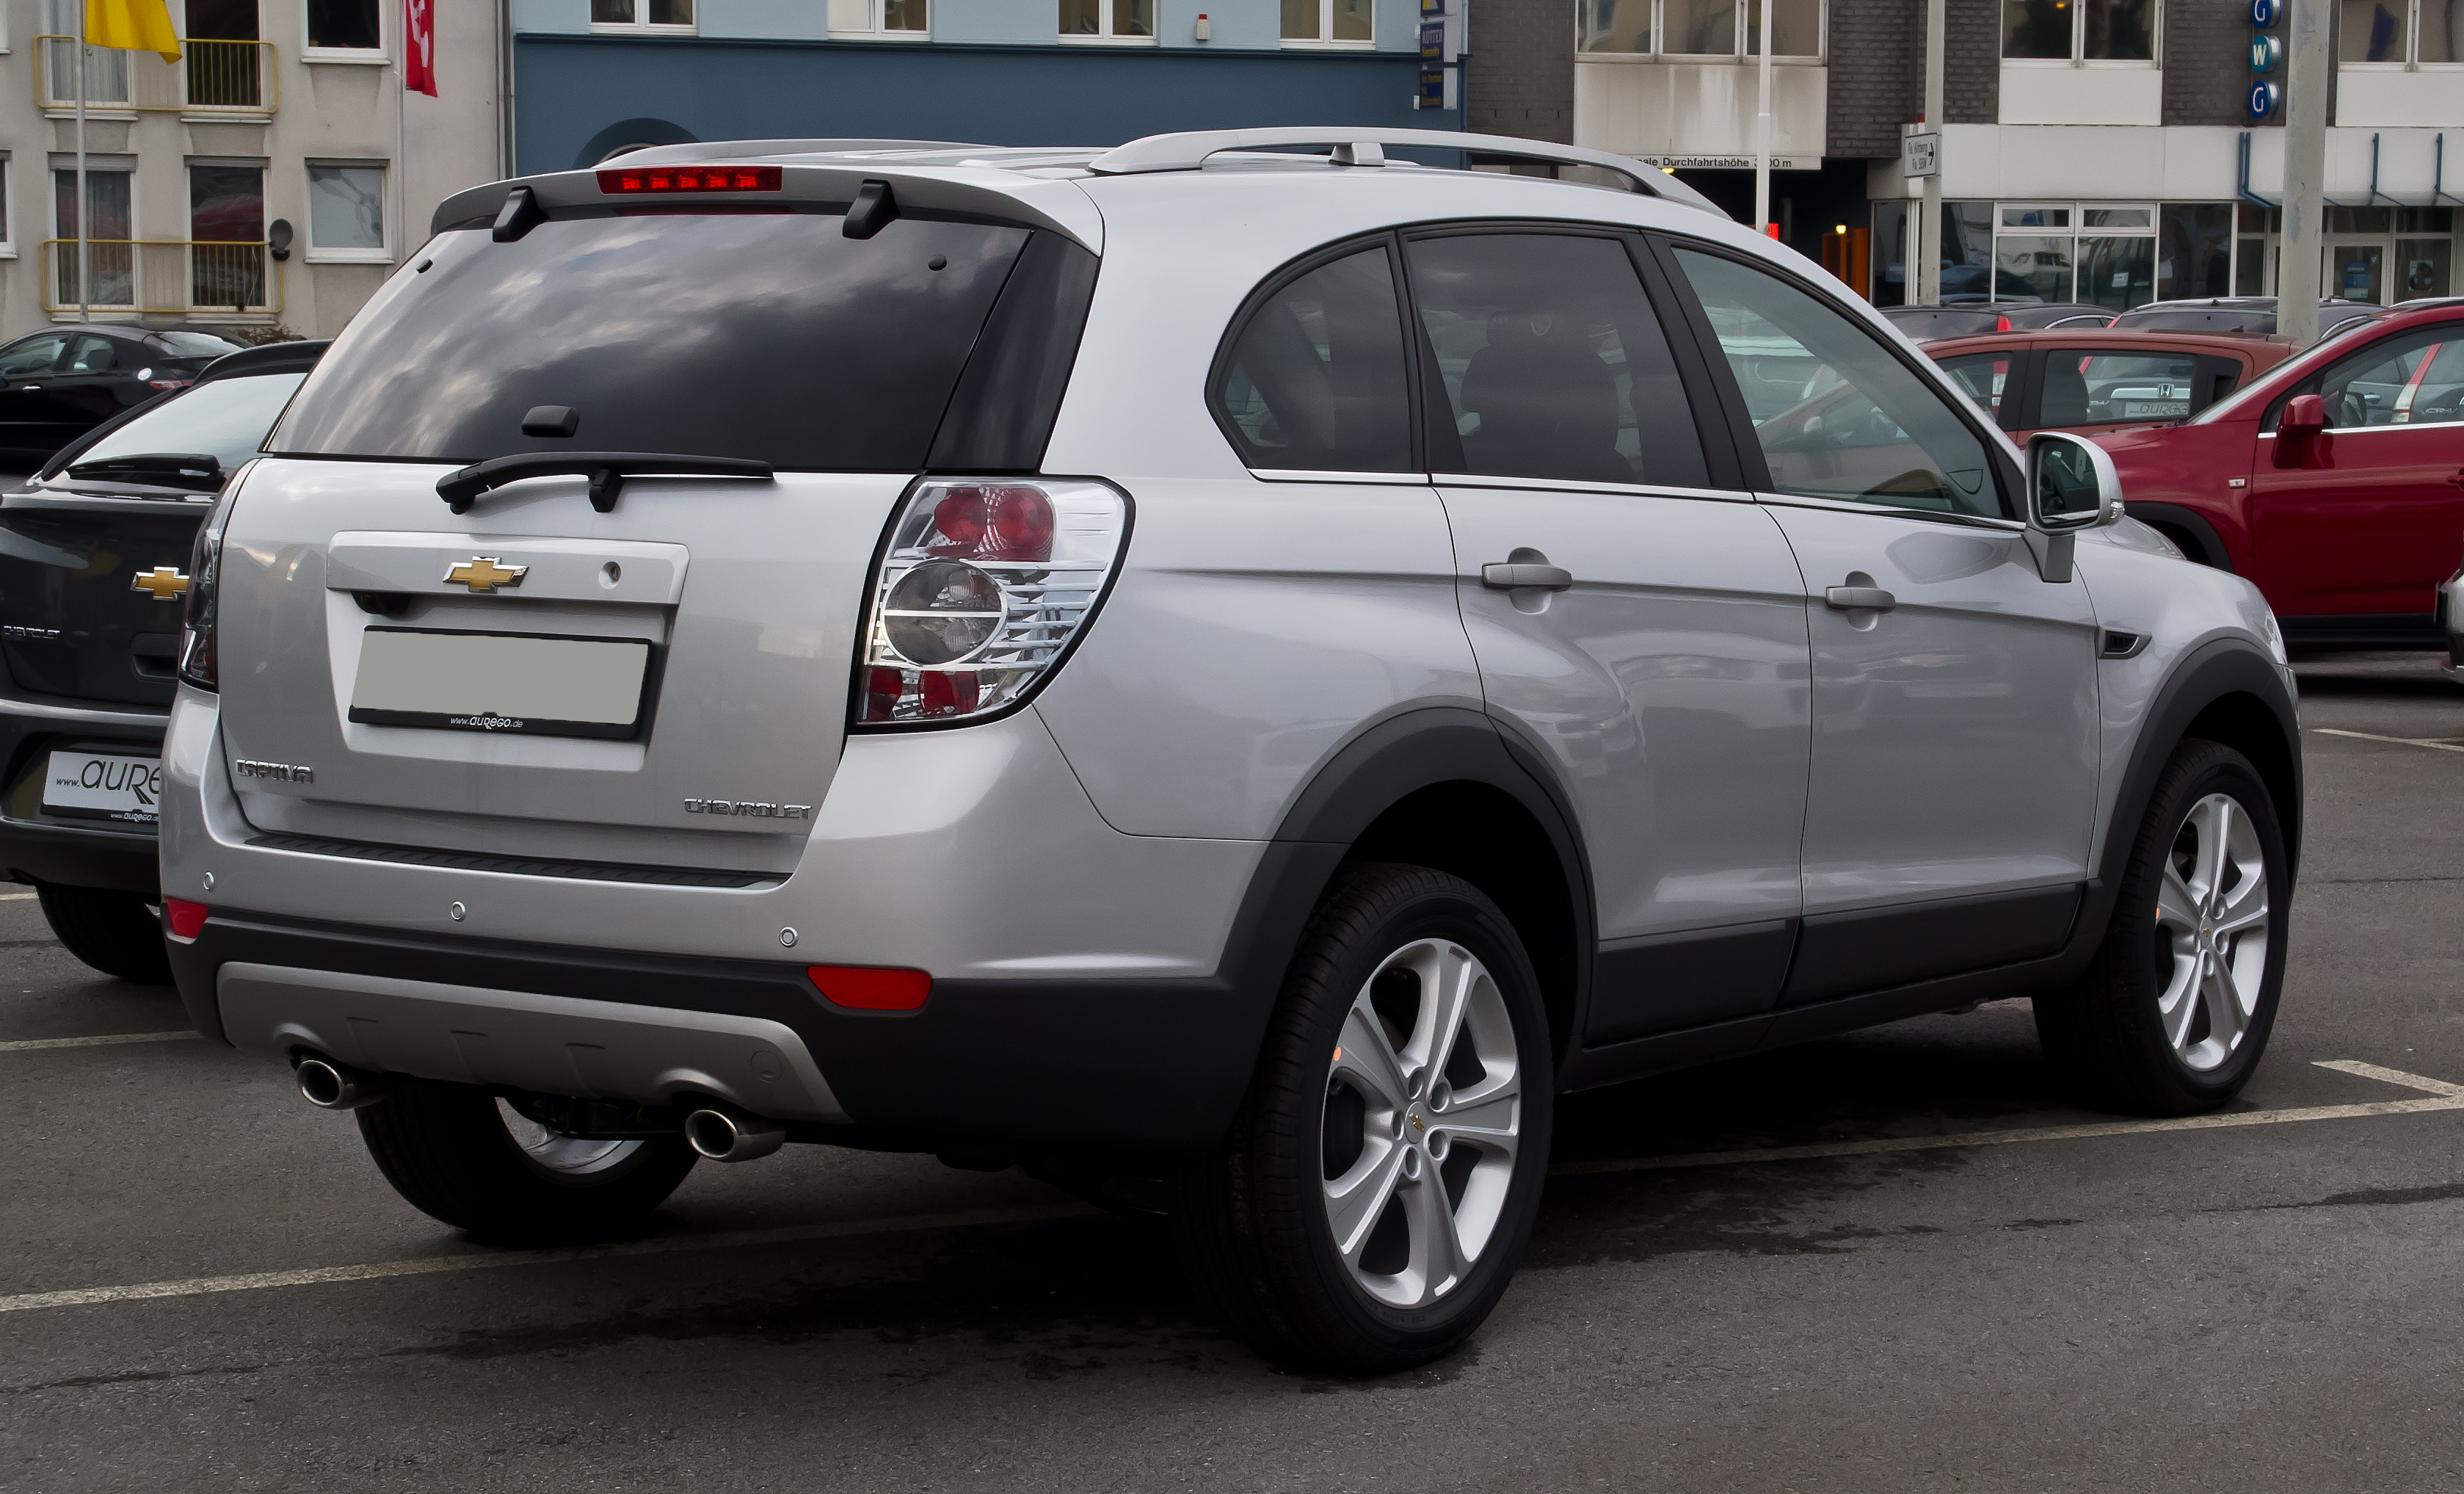 Description Chevrolet Captiva LTZ 2.2 D 4WD (Facelift) – Heckansicht